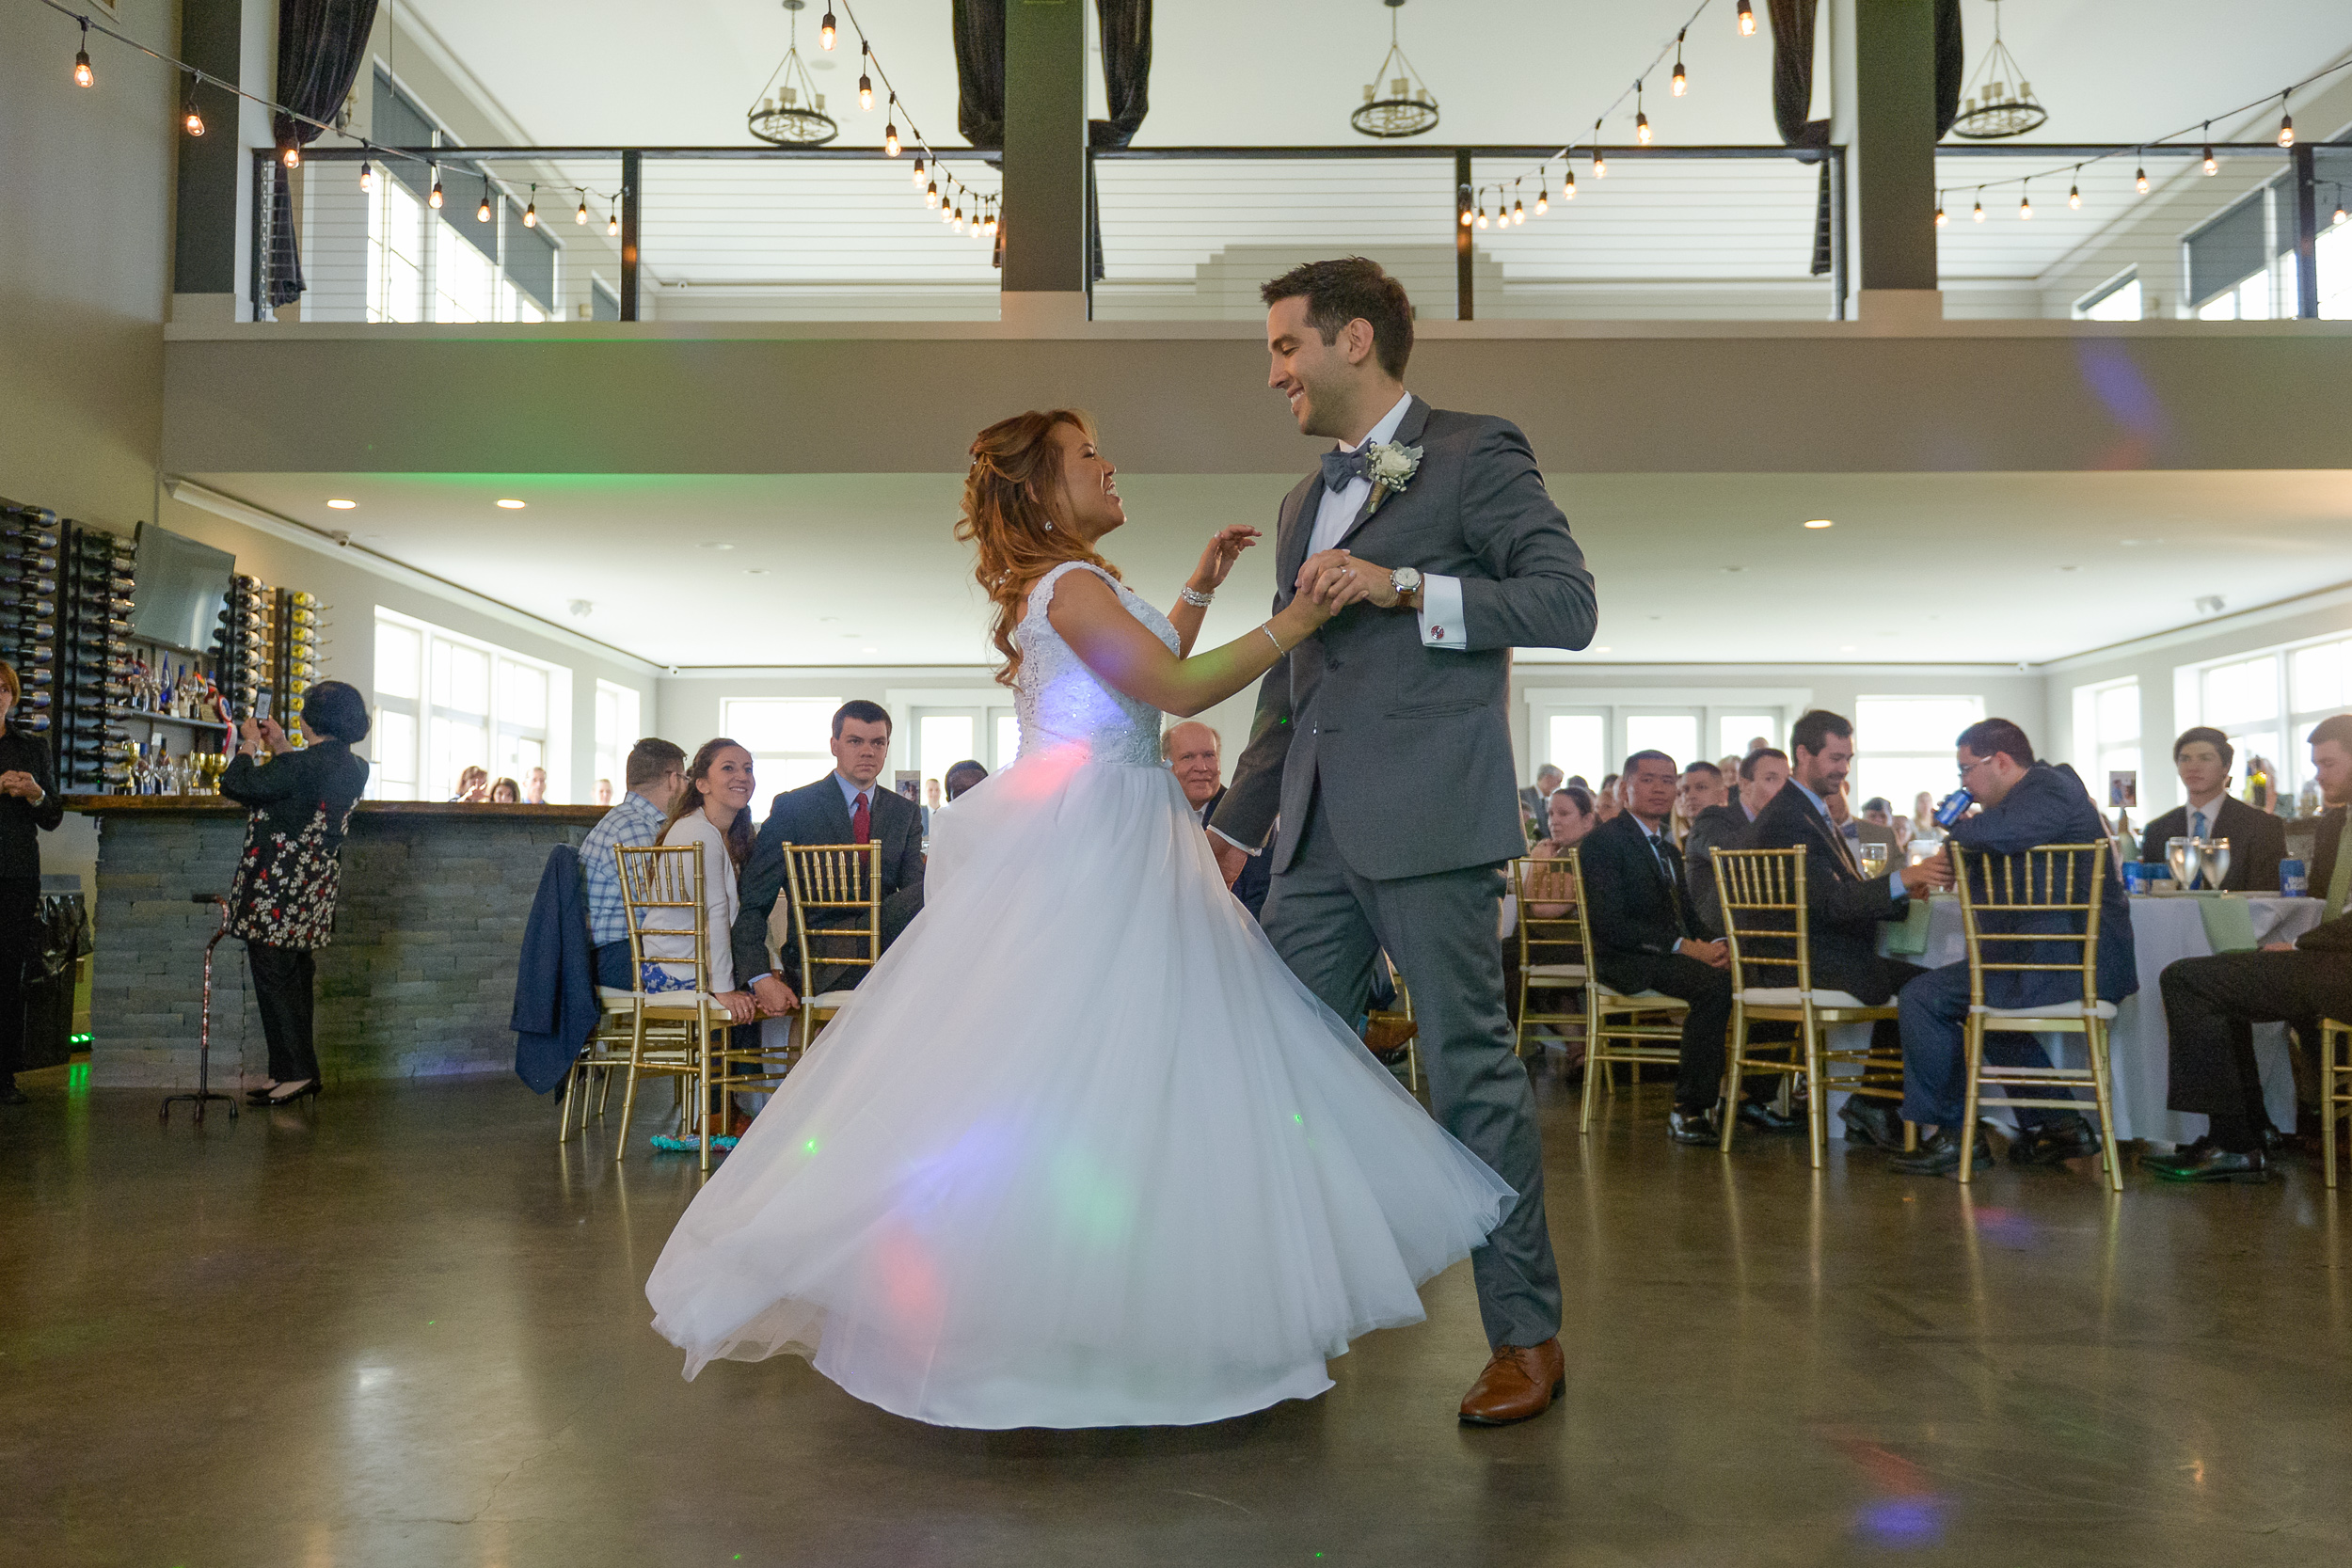 A bride and groom share their first dance as husband and wife at a reception at Blue Valley Vineyard and Winery in Delaplane, Virginia